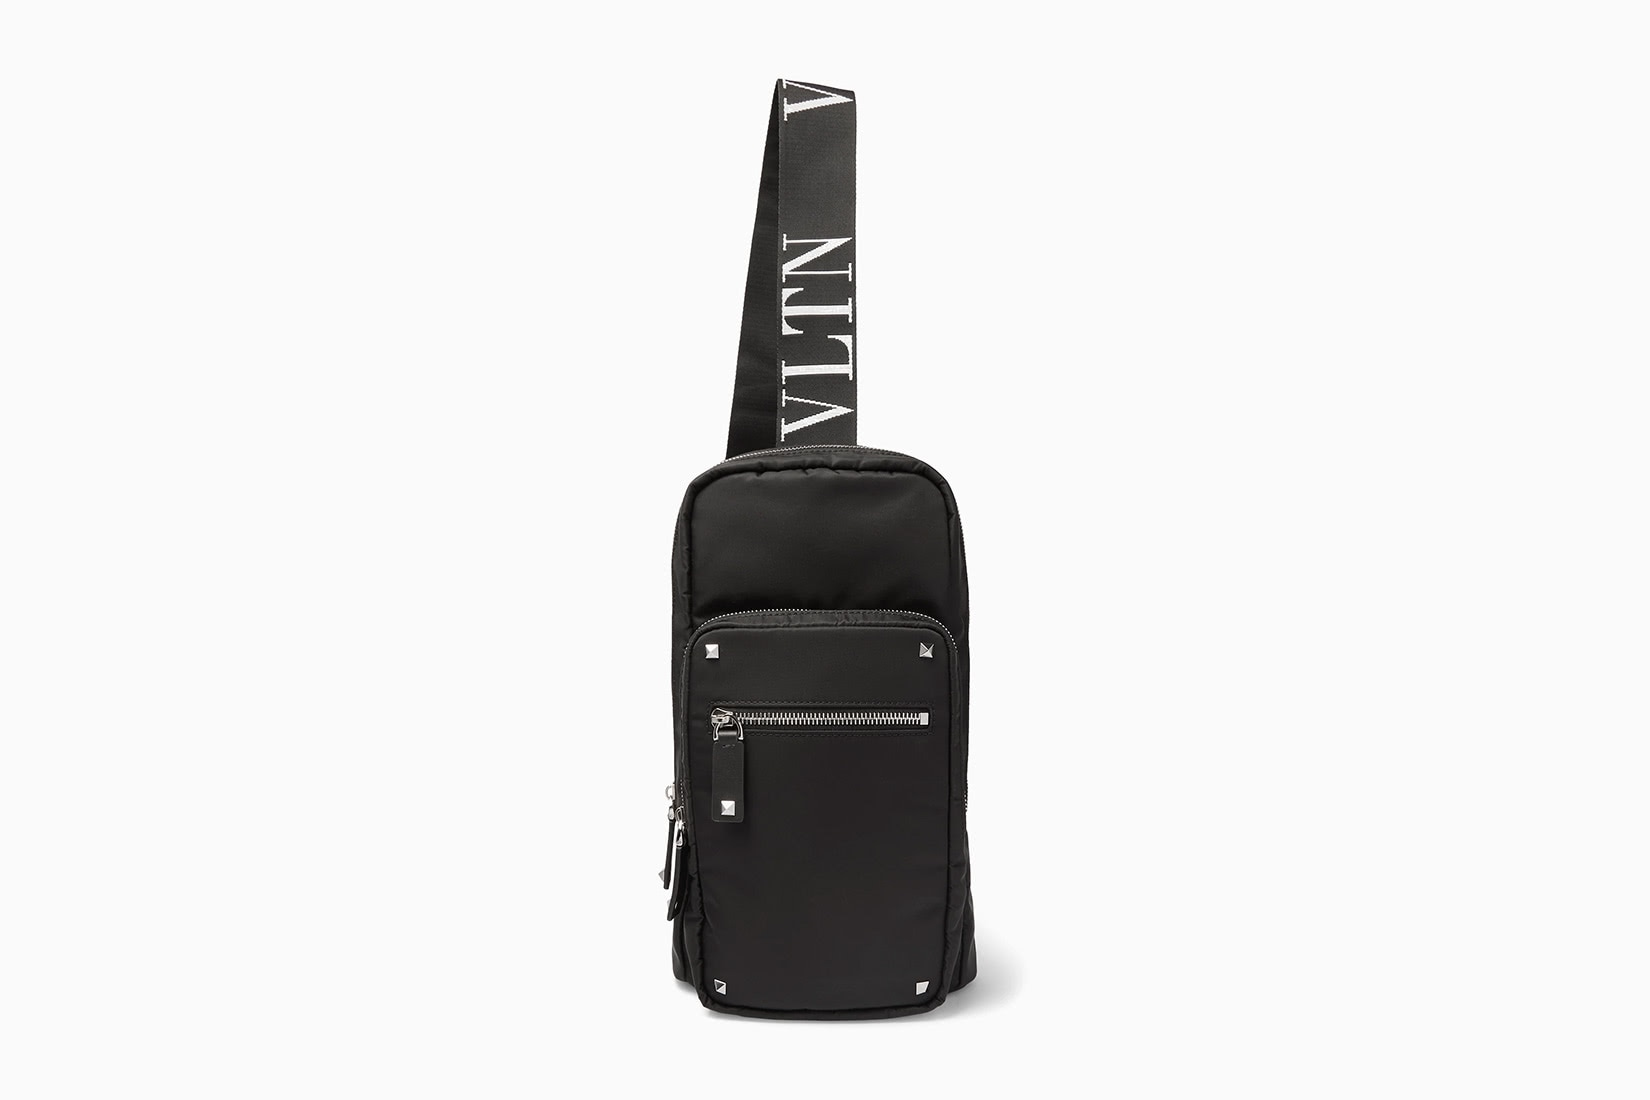 best sling bag valentino garavani - Luxe Digital